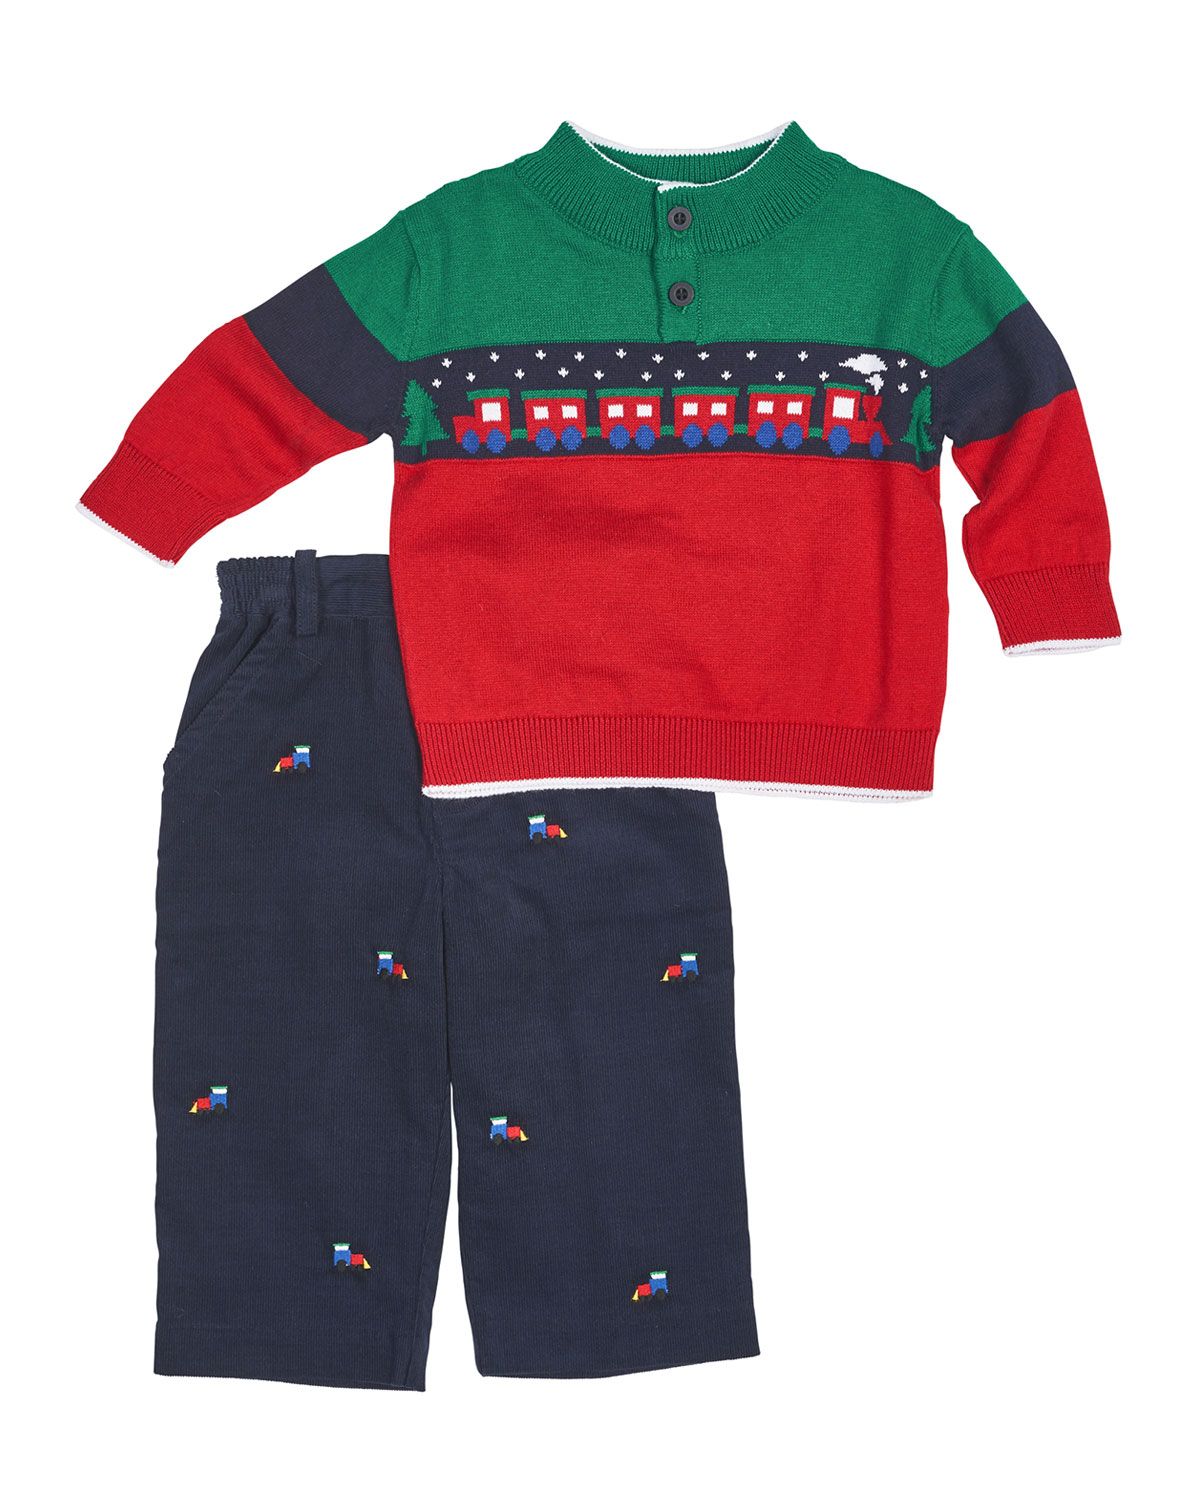 Colorblock Train Sweater w/ Corduroy Pants, Navy, Size 12-24 Months